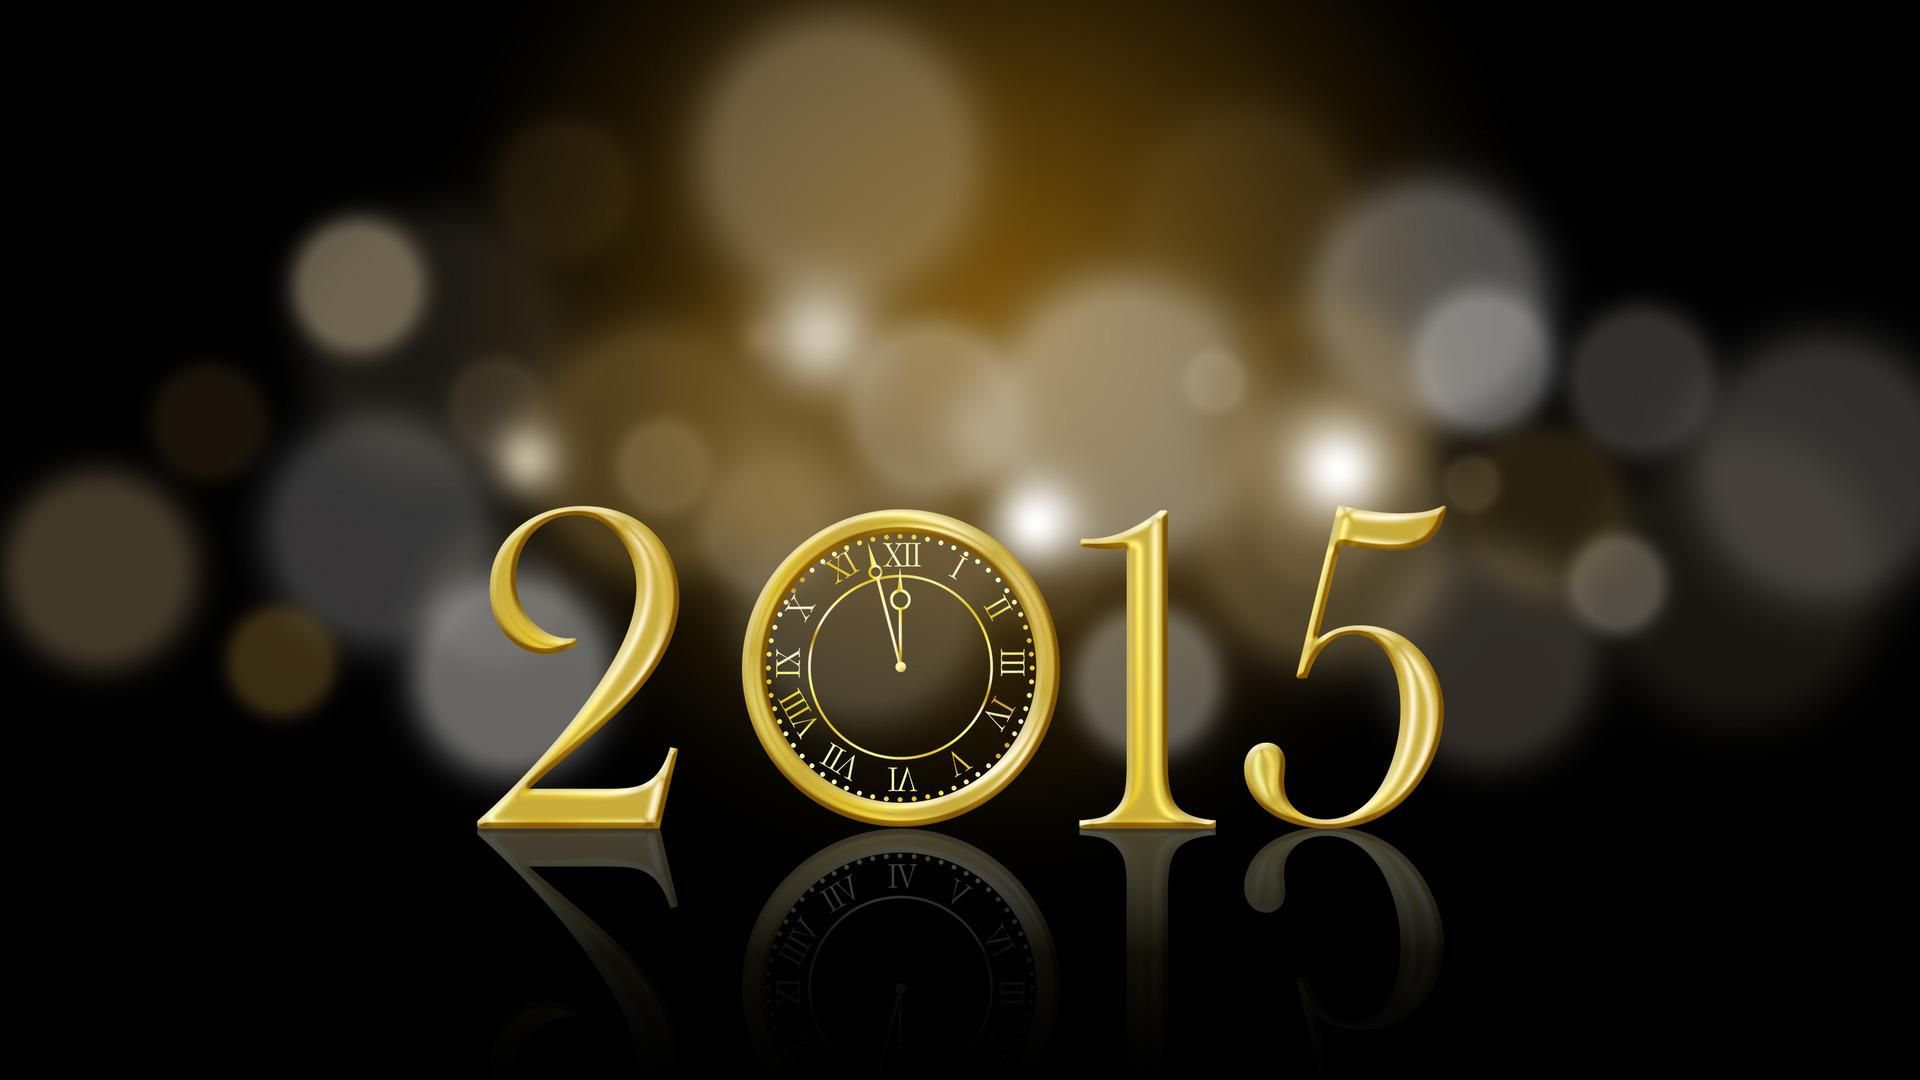 Happy New Year 2015 HD Wallpaper Android Stock Wallpapers 1920x1080